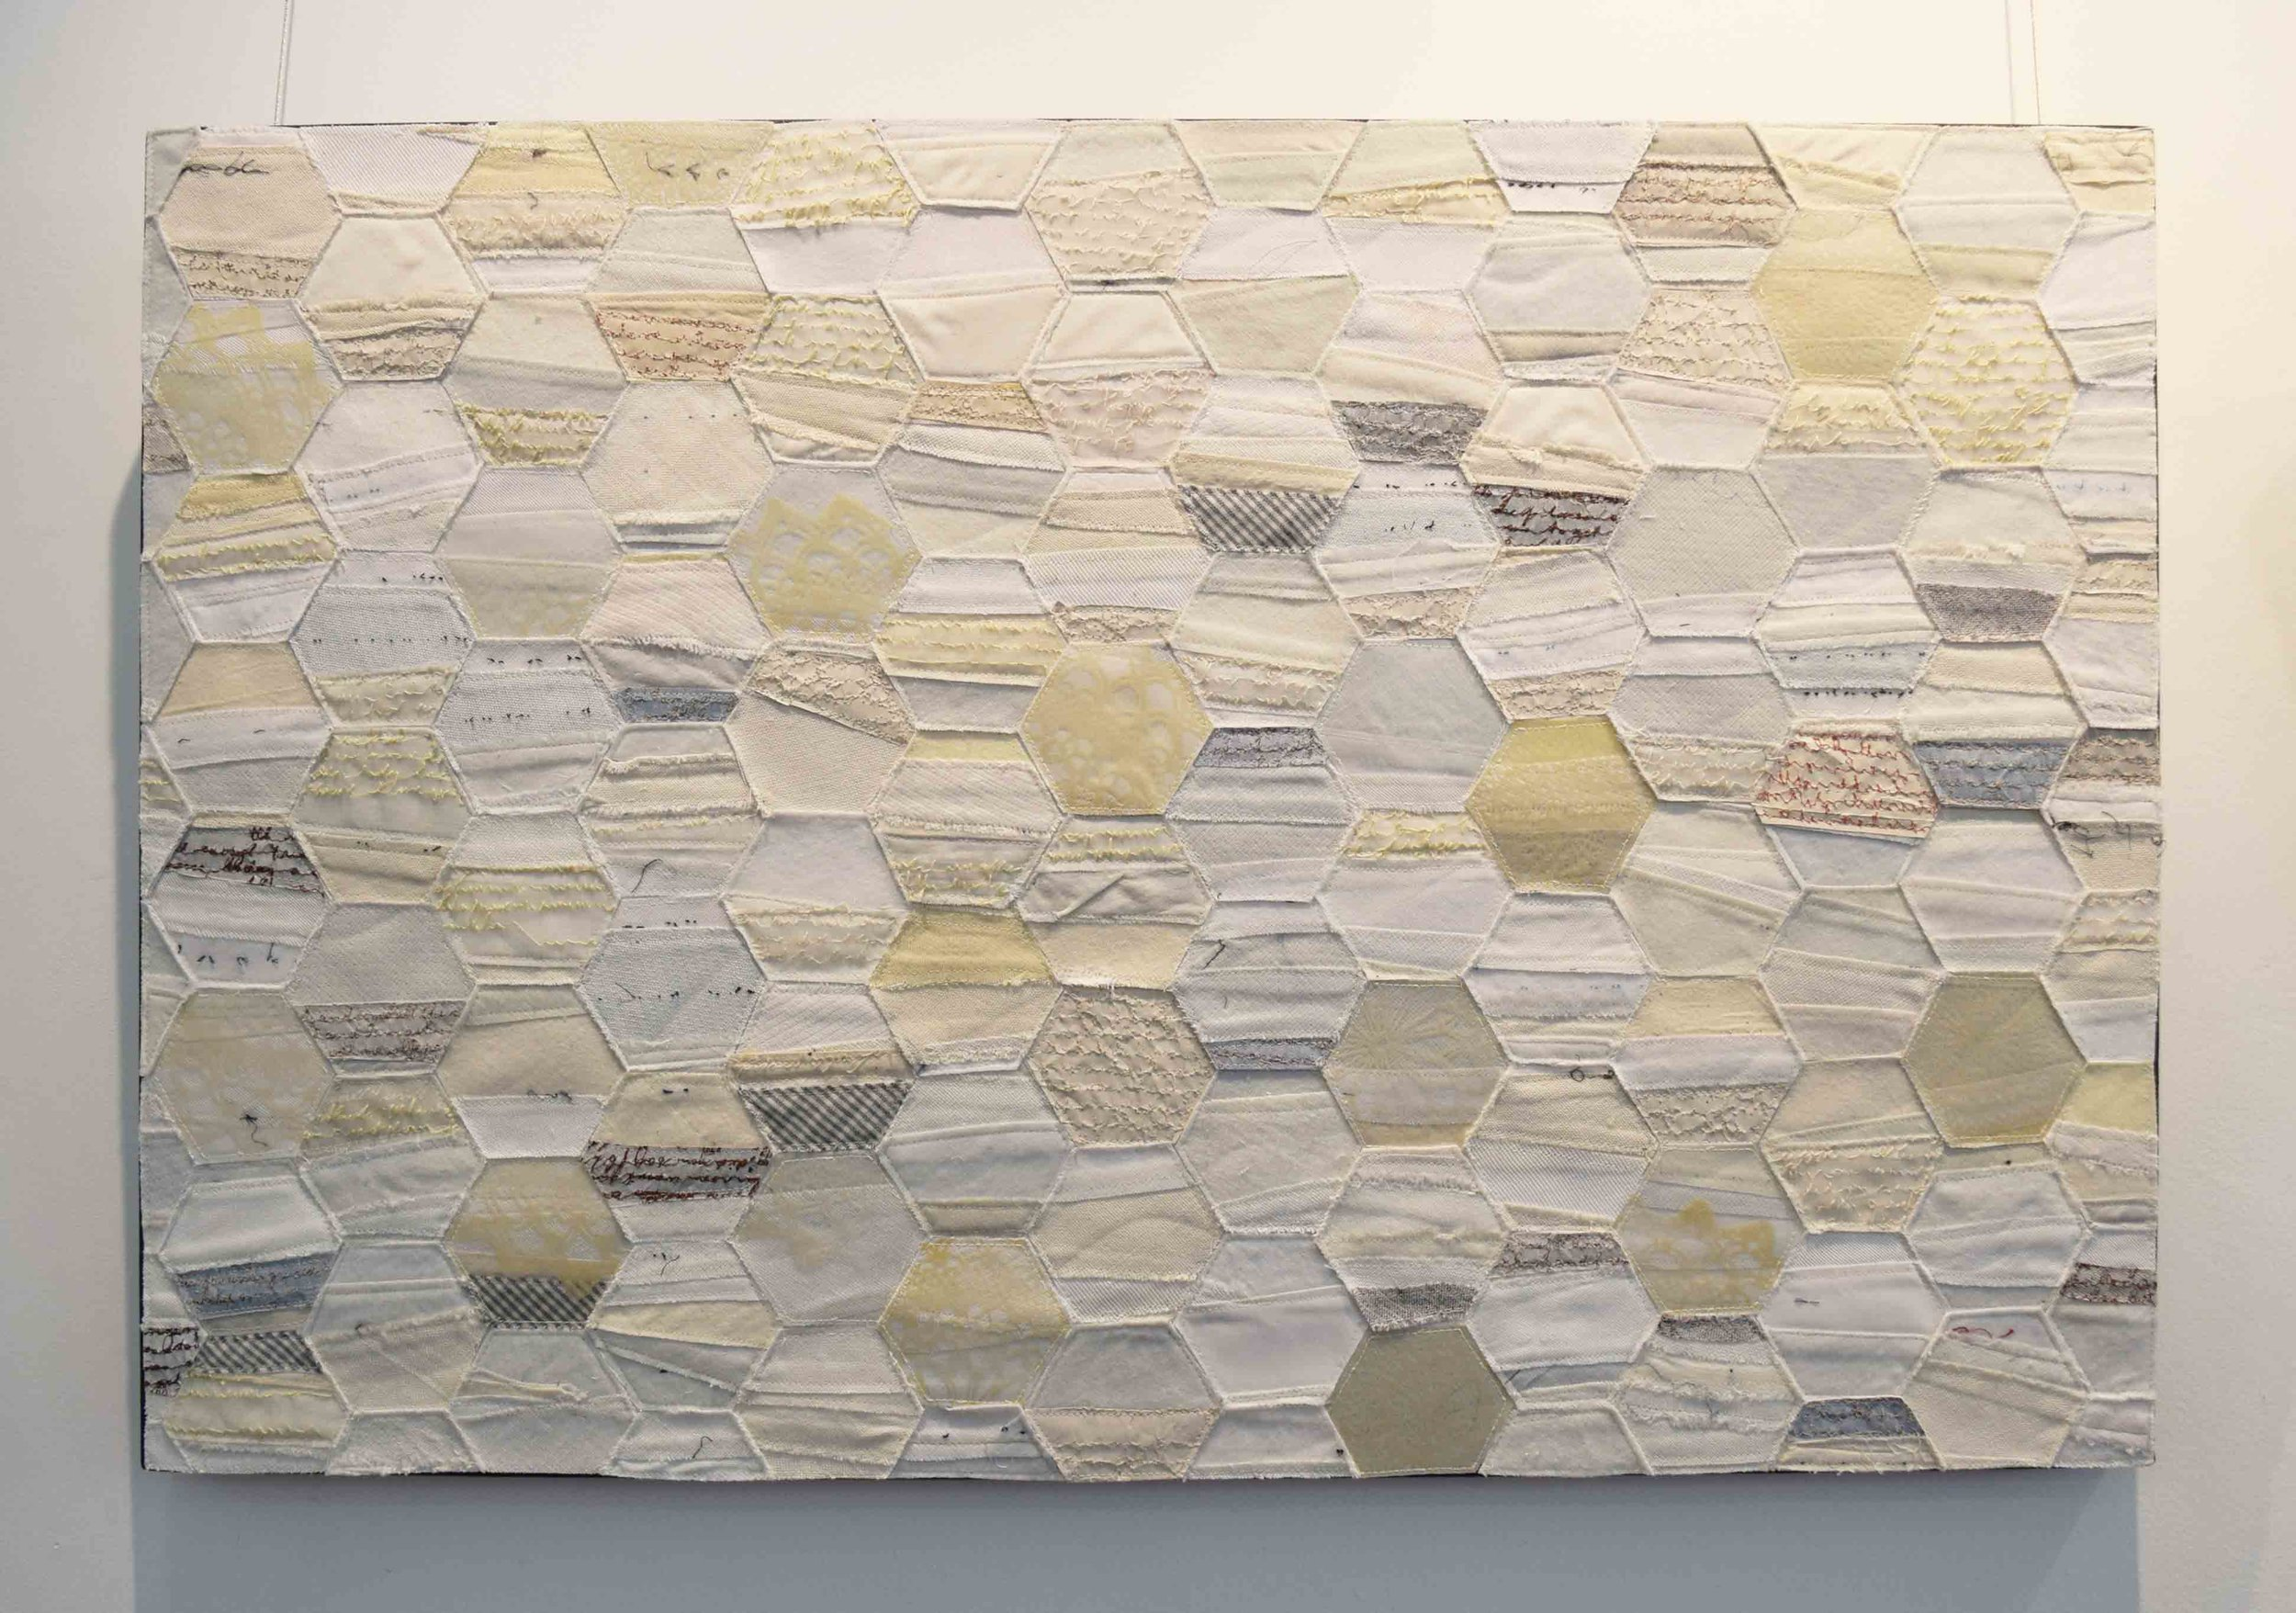 4.  2000 Miles Away 1 , 2018, business tie facings, hand woven silk organza, overhead projector sheeting, recycled security envelopes, 61 x 91 cm. $1,500 each